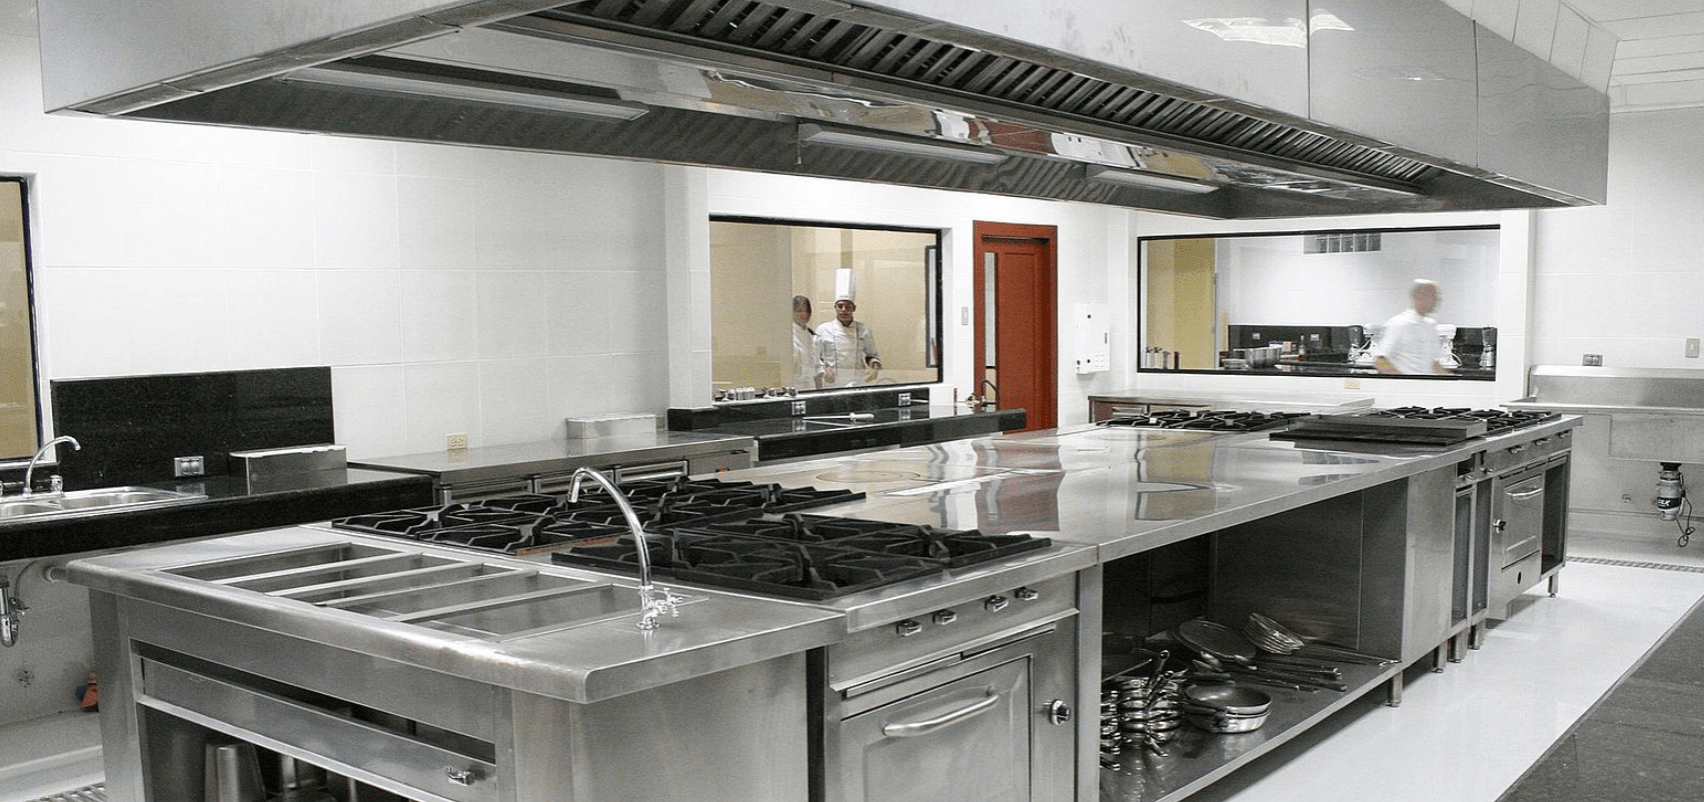 Eastern Drain commercial kitchen cleaning